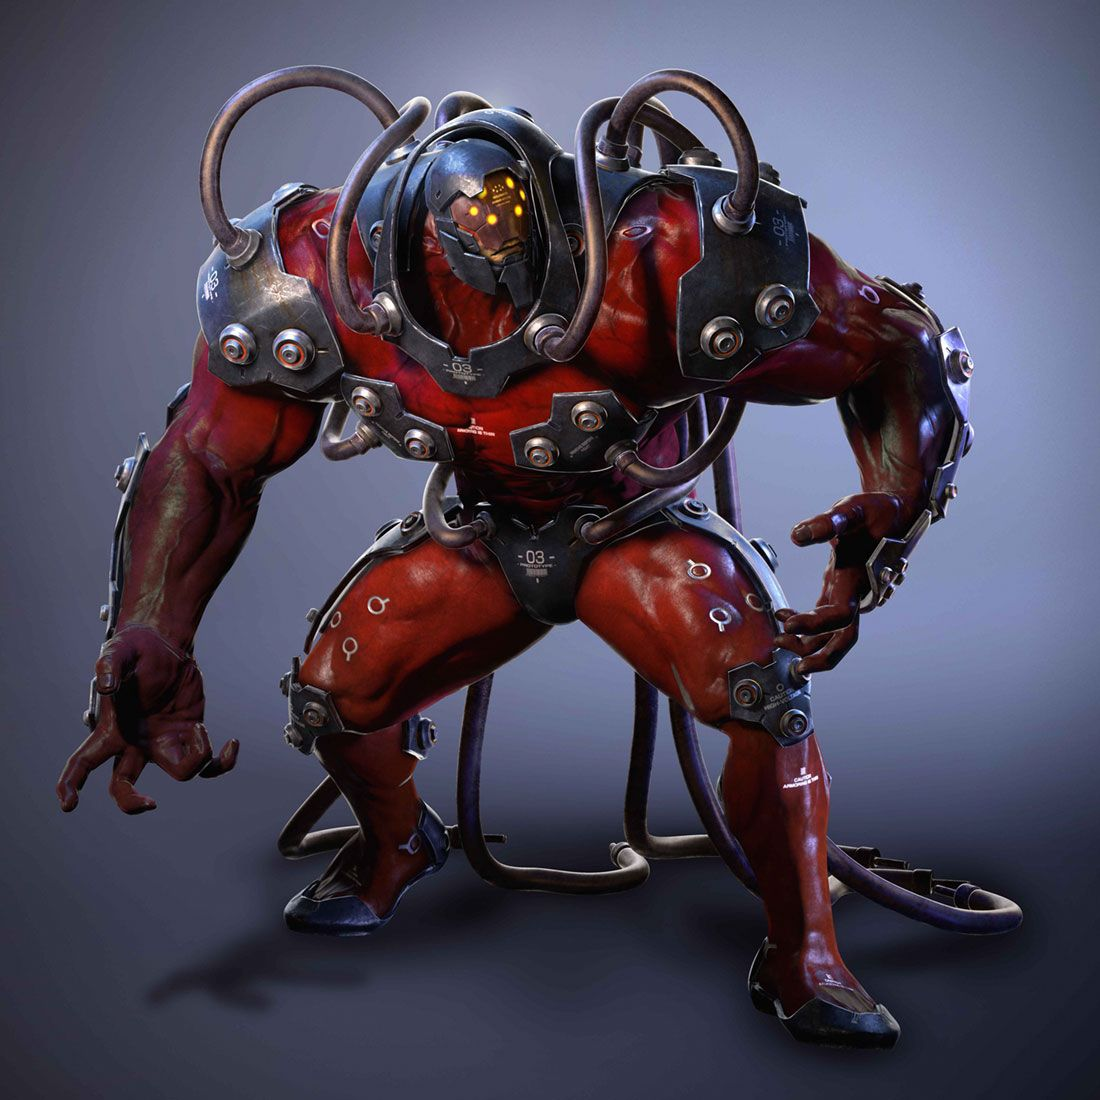 Gigas Character Artwork From Tekken 7 Fated Retribution Art Illustration Artwork Gaming Videogam Tekken 7 Street Fighter Characters Game Character Design